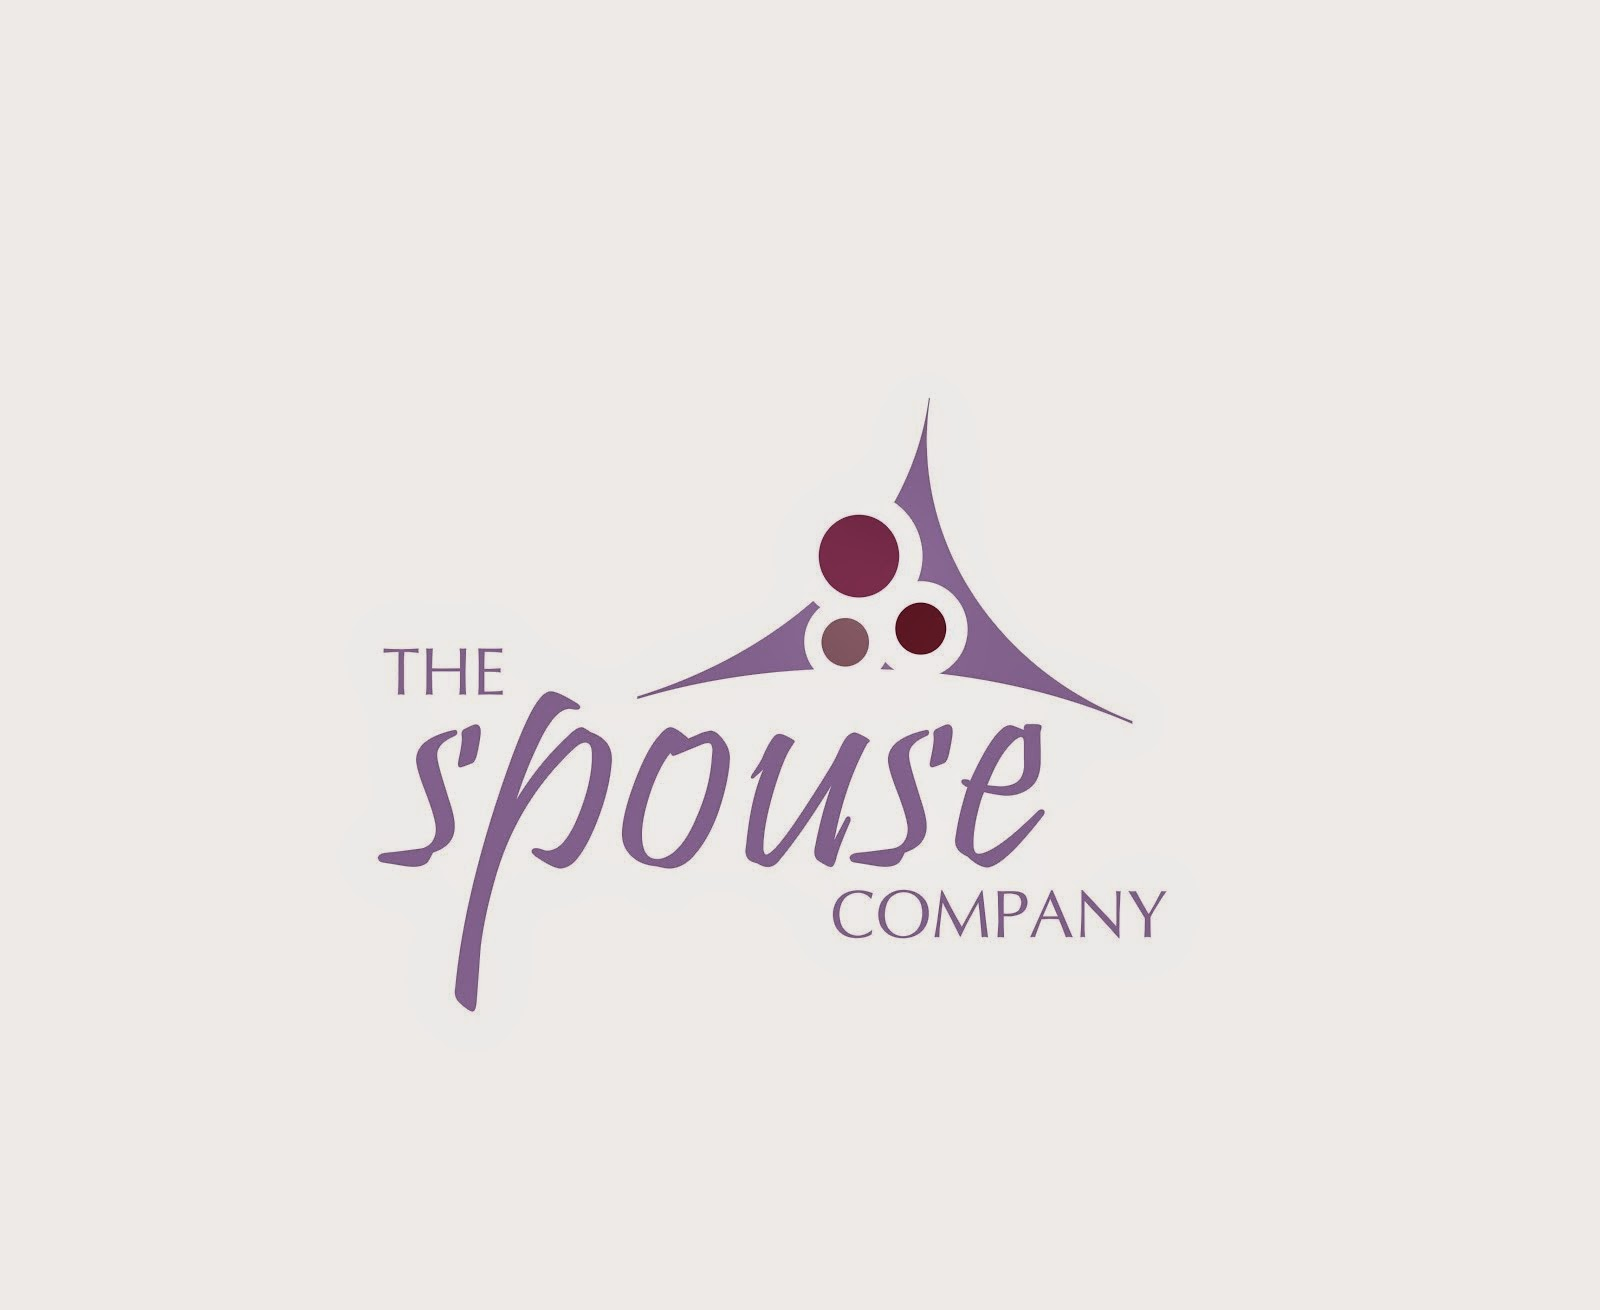 The Spouse Company